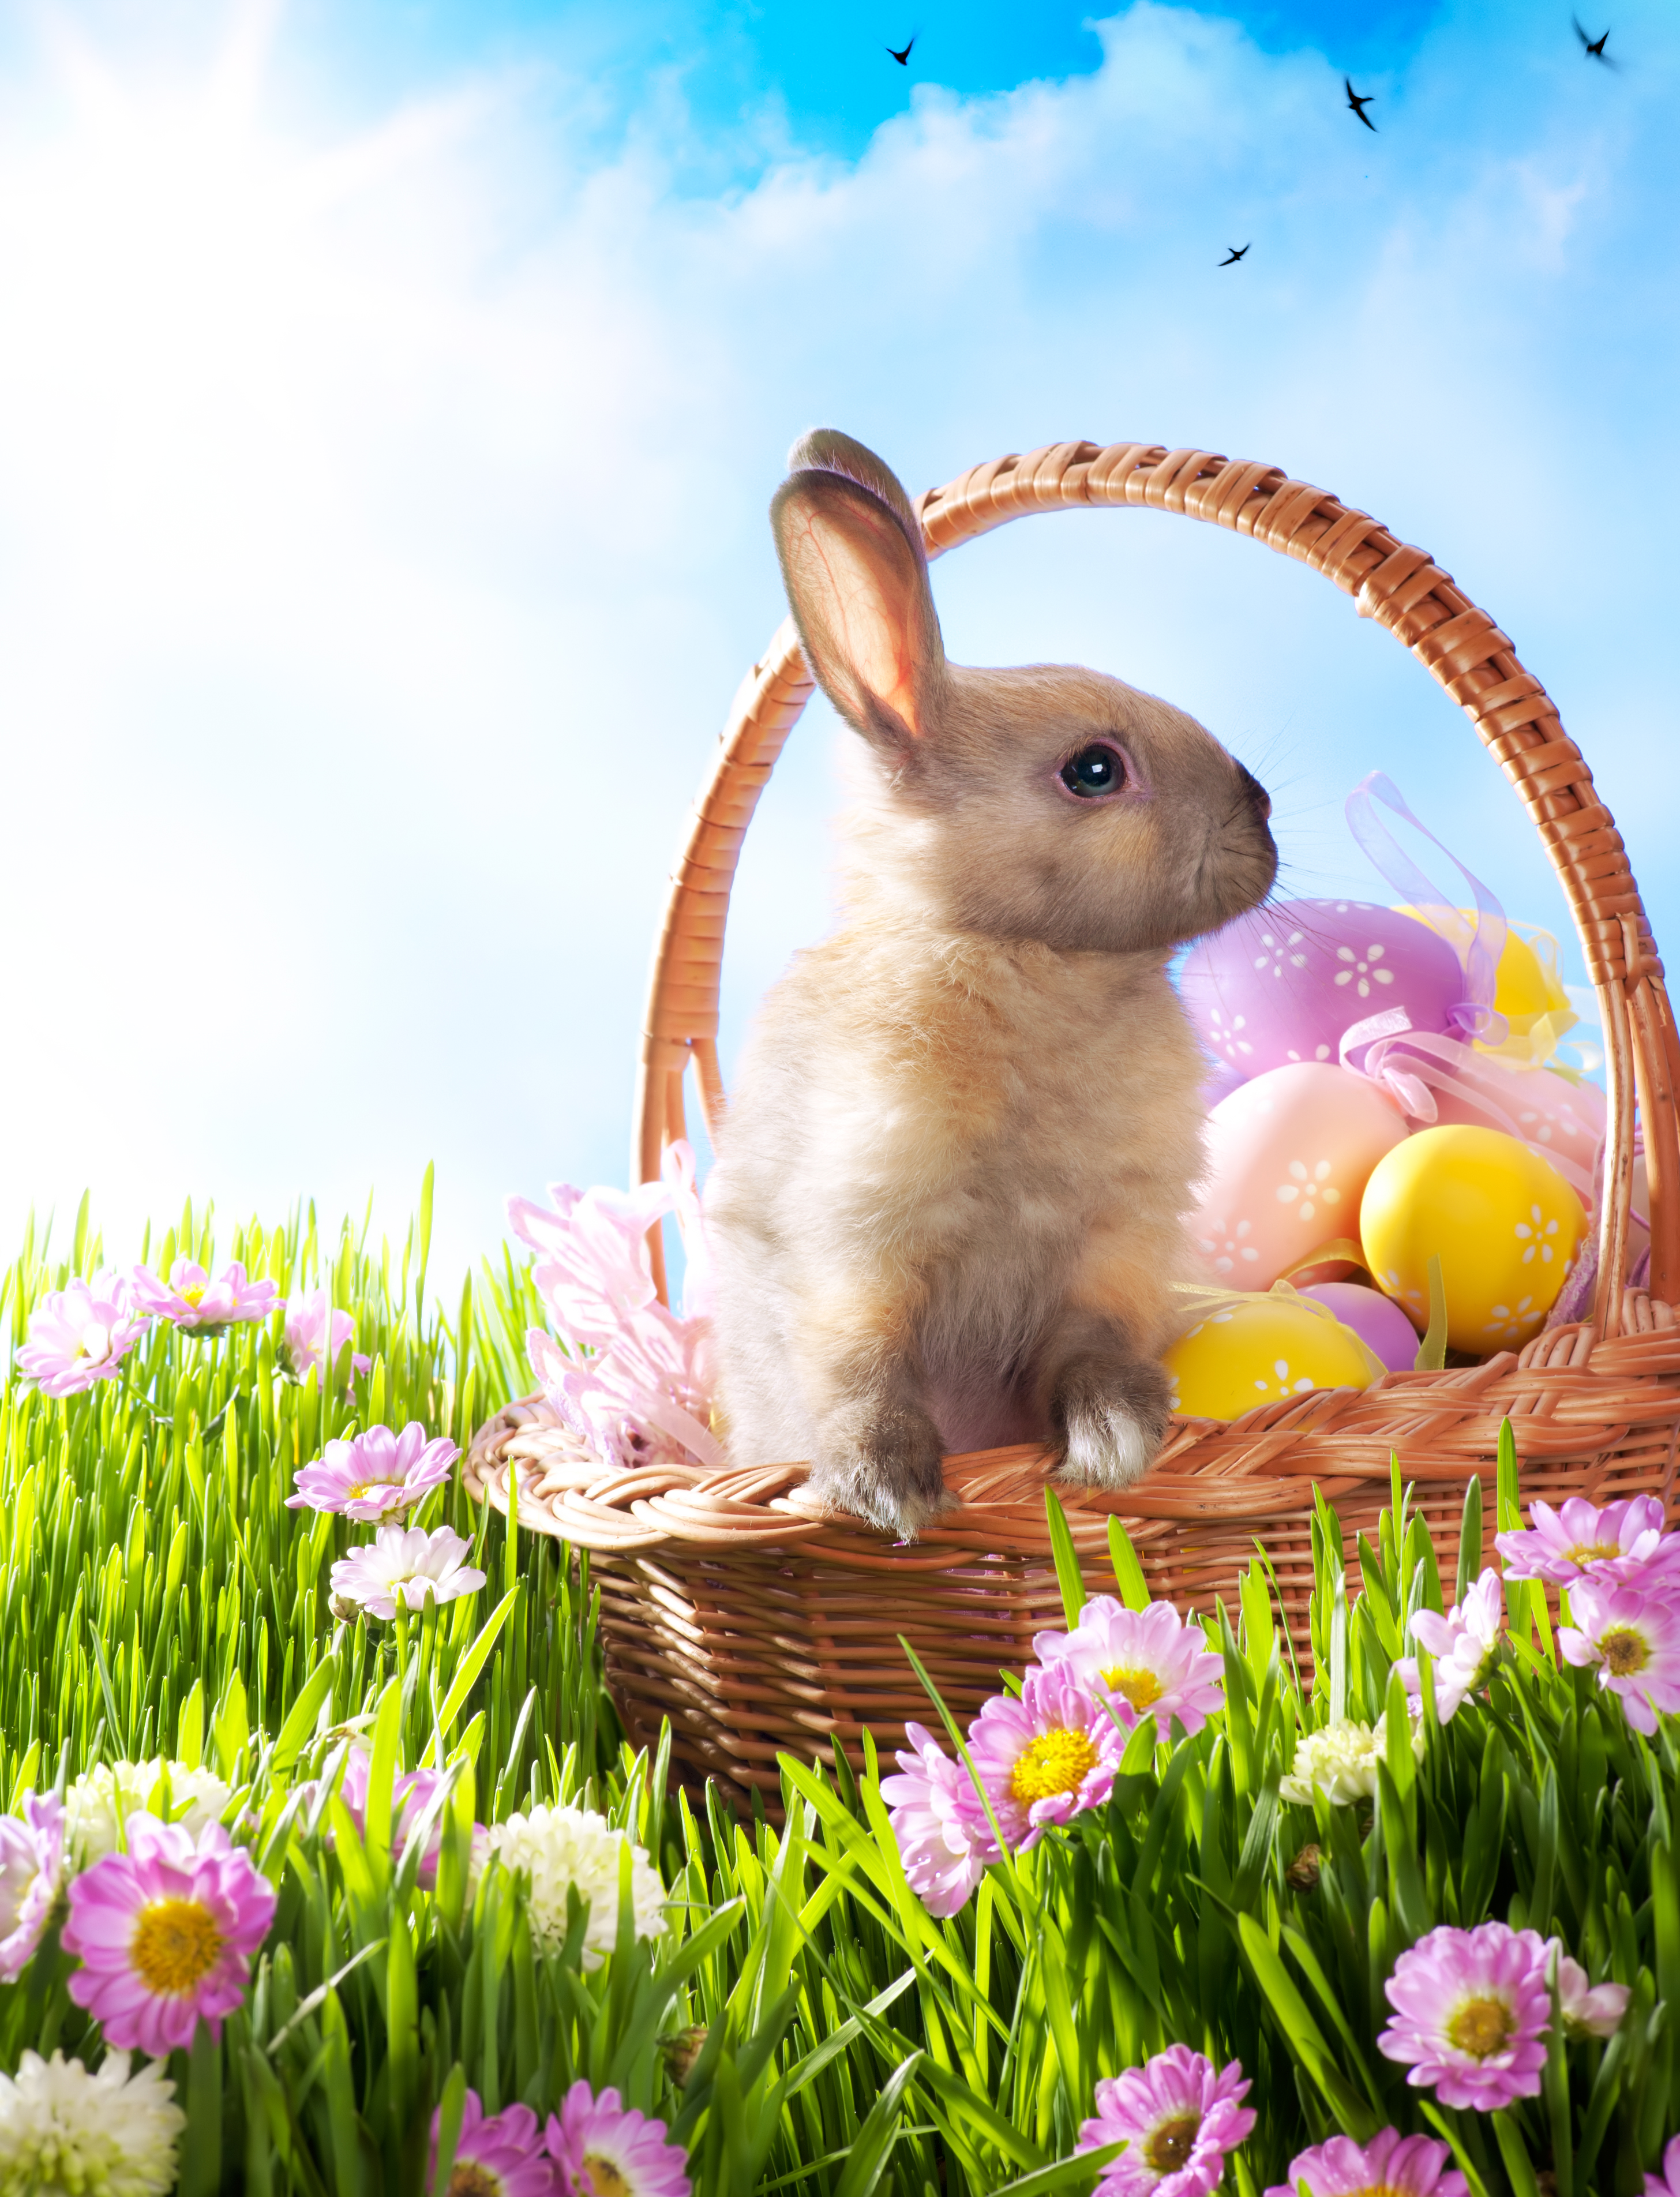 Easter Bunny History | SANDMAN SAYS for Real Easter Bunny With Eggs  111ane